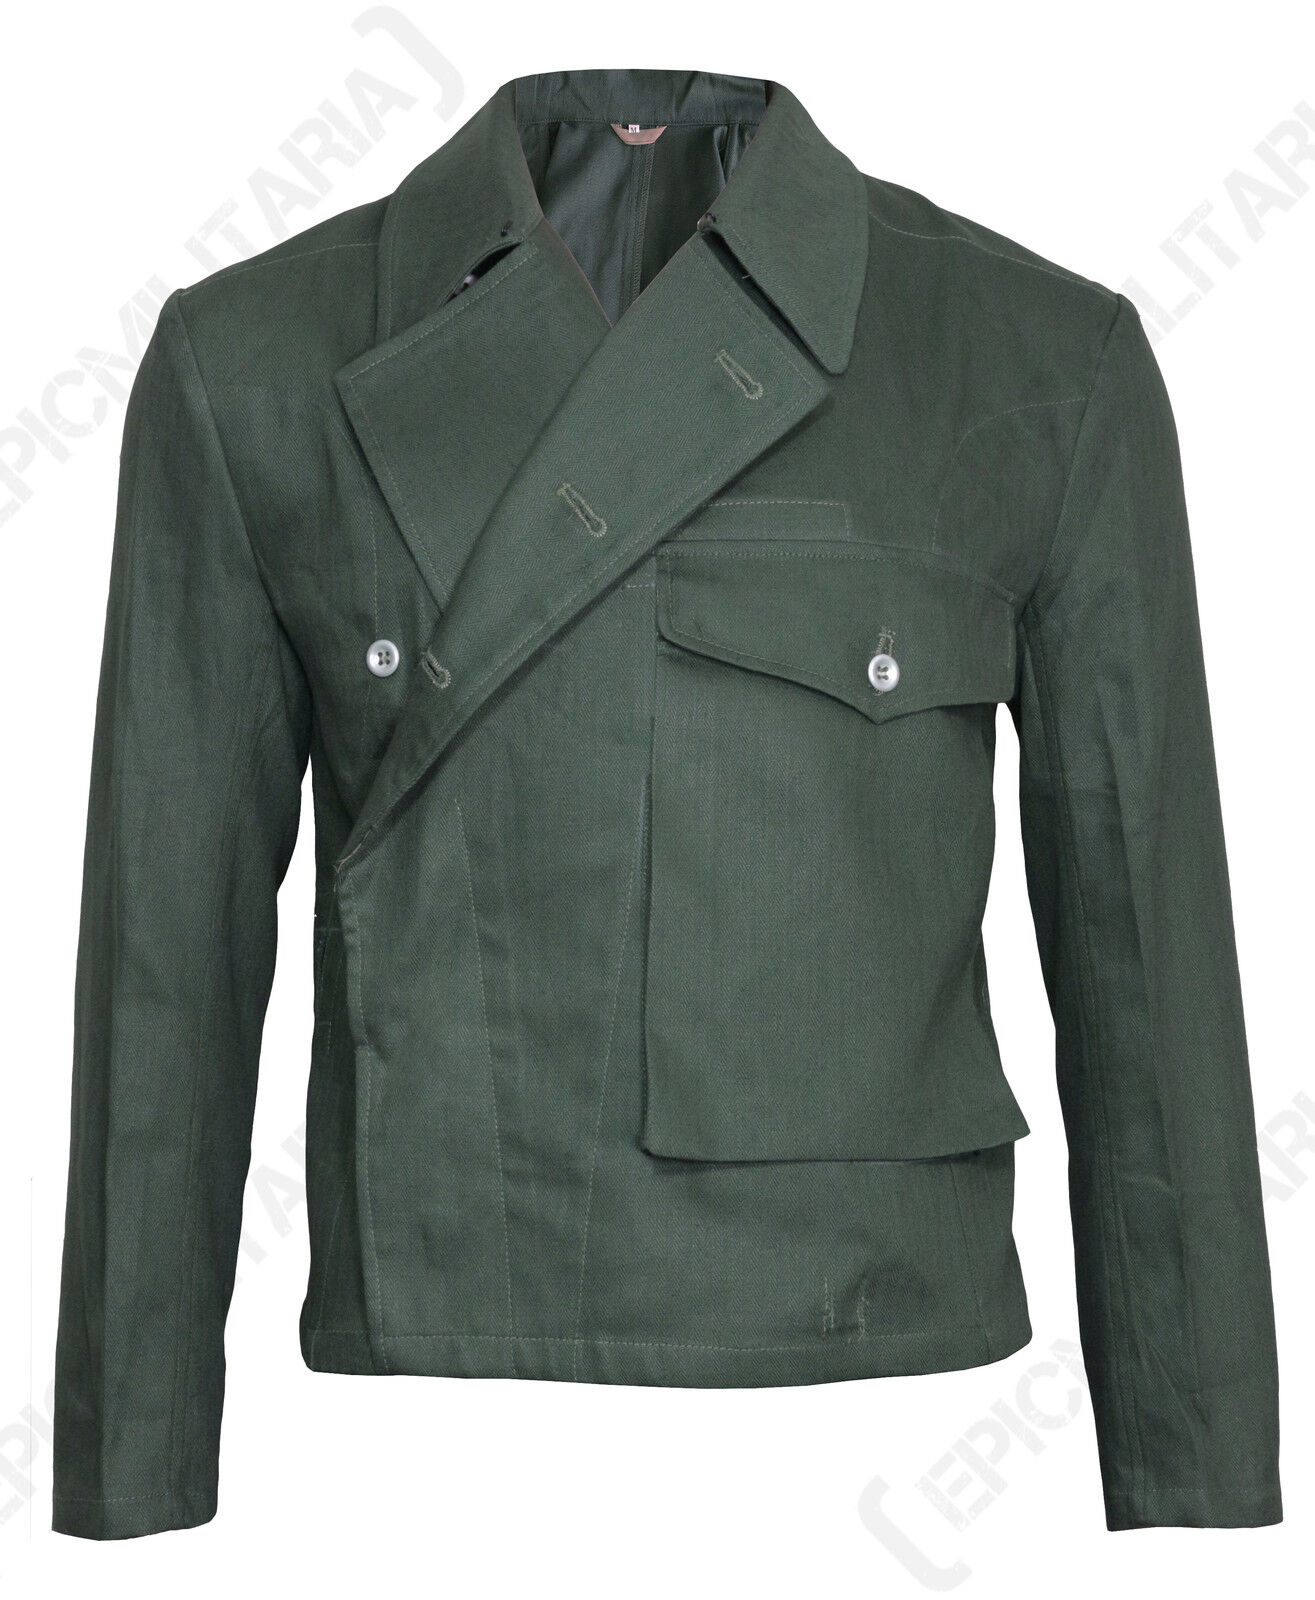 German Army HBT HBT Army PANZER WRAP in Reed verde - All Sizes - WW2 Repro Heer Uniform ef0a3e